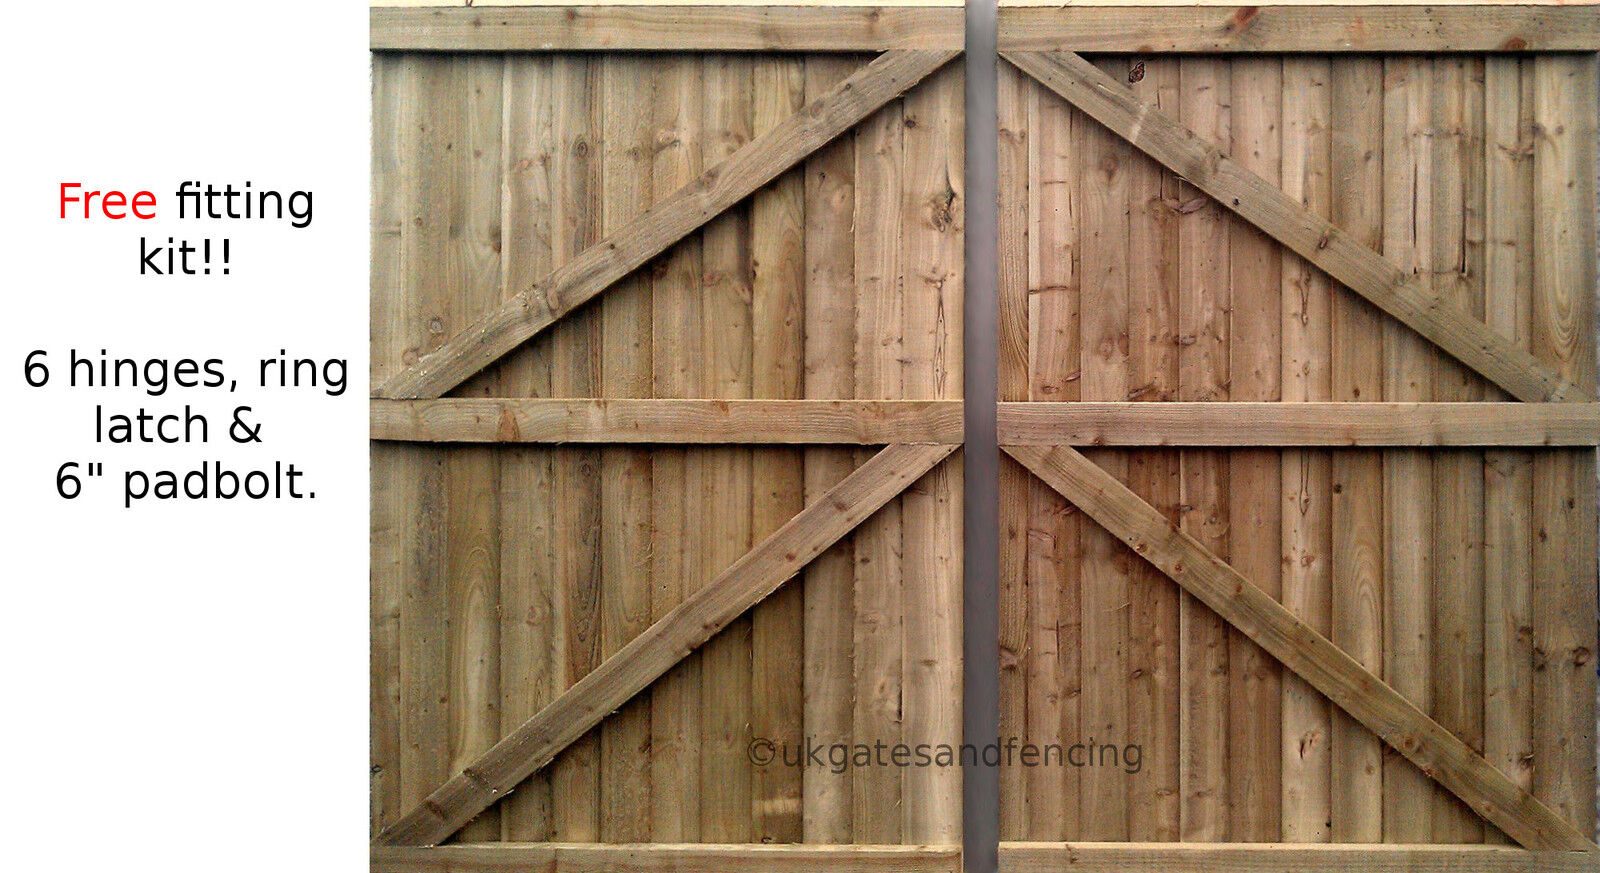 Wooden driveway Gates, Garden gates,Double Gates,Featheredge Gates  Heavy Duty